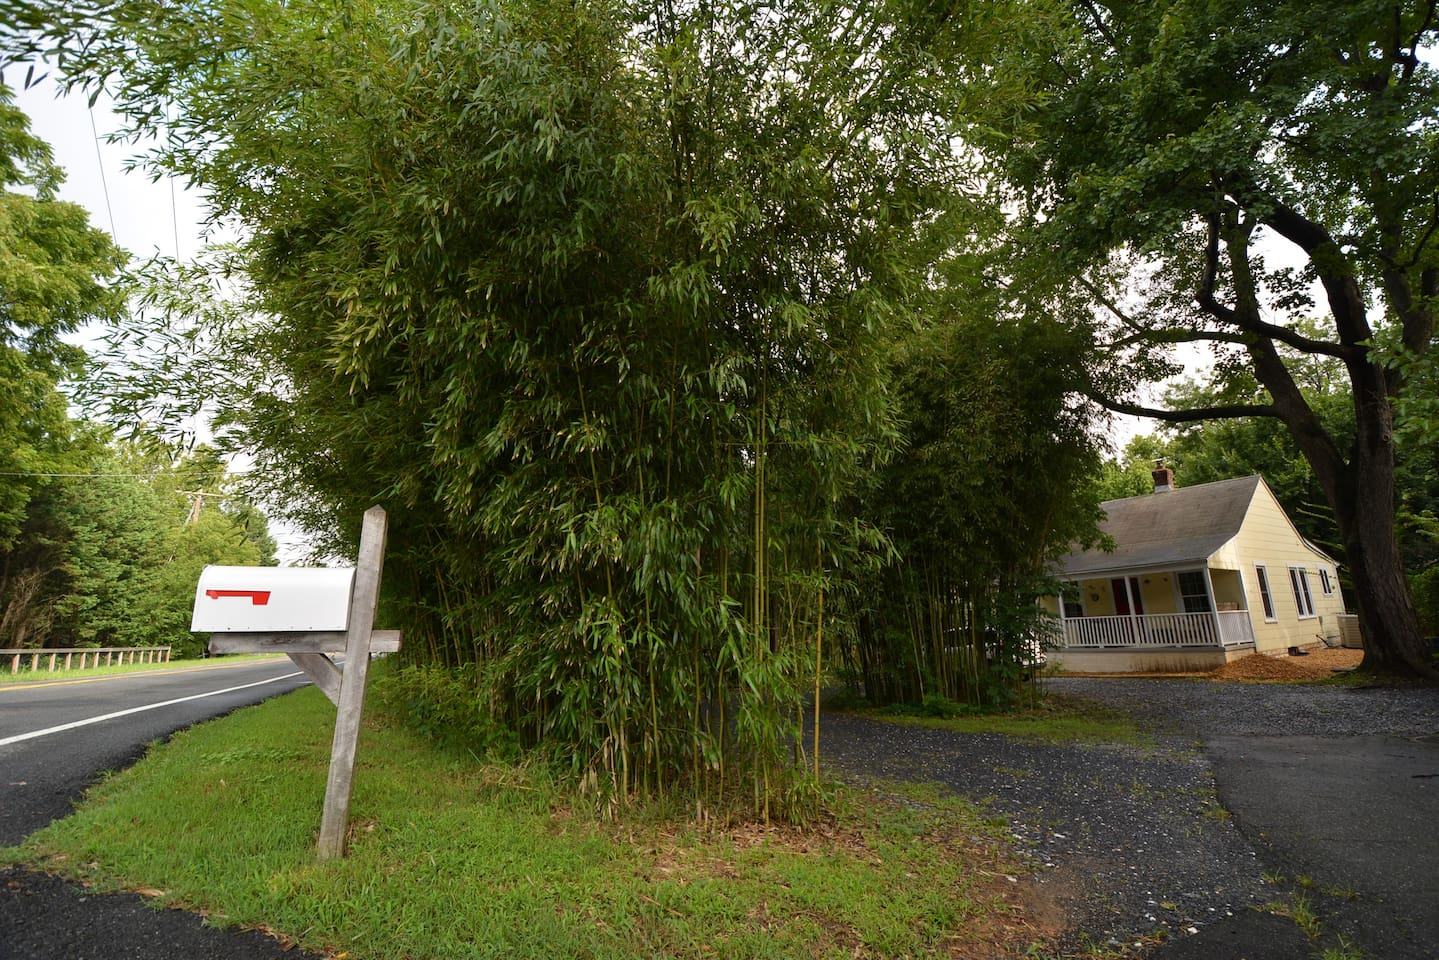 Upon arrival, bamboo thicket greats the guests